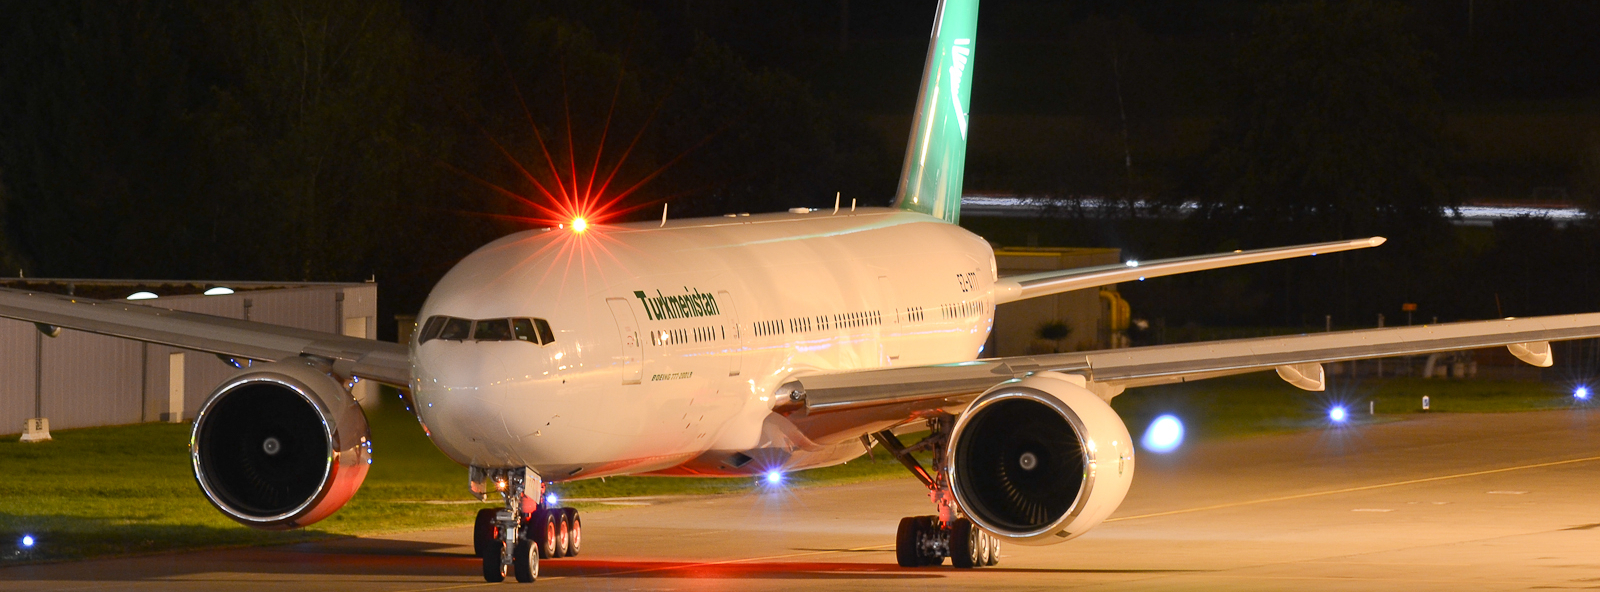 Turkmenistan Airlines Takes Delivery of its First 777-200LR ...